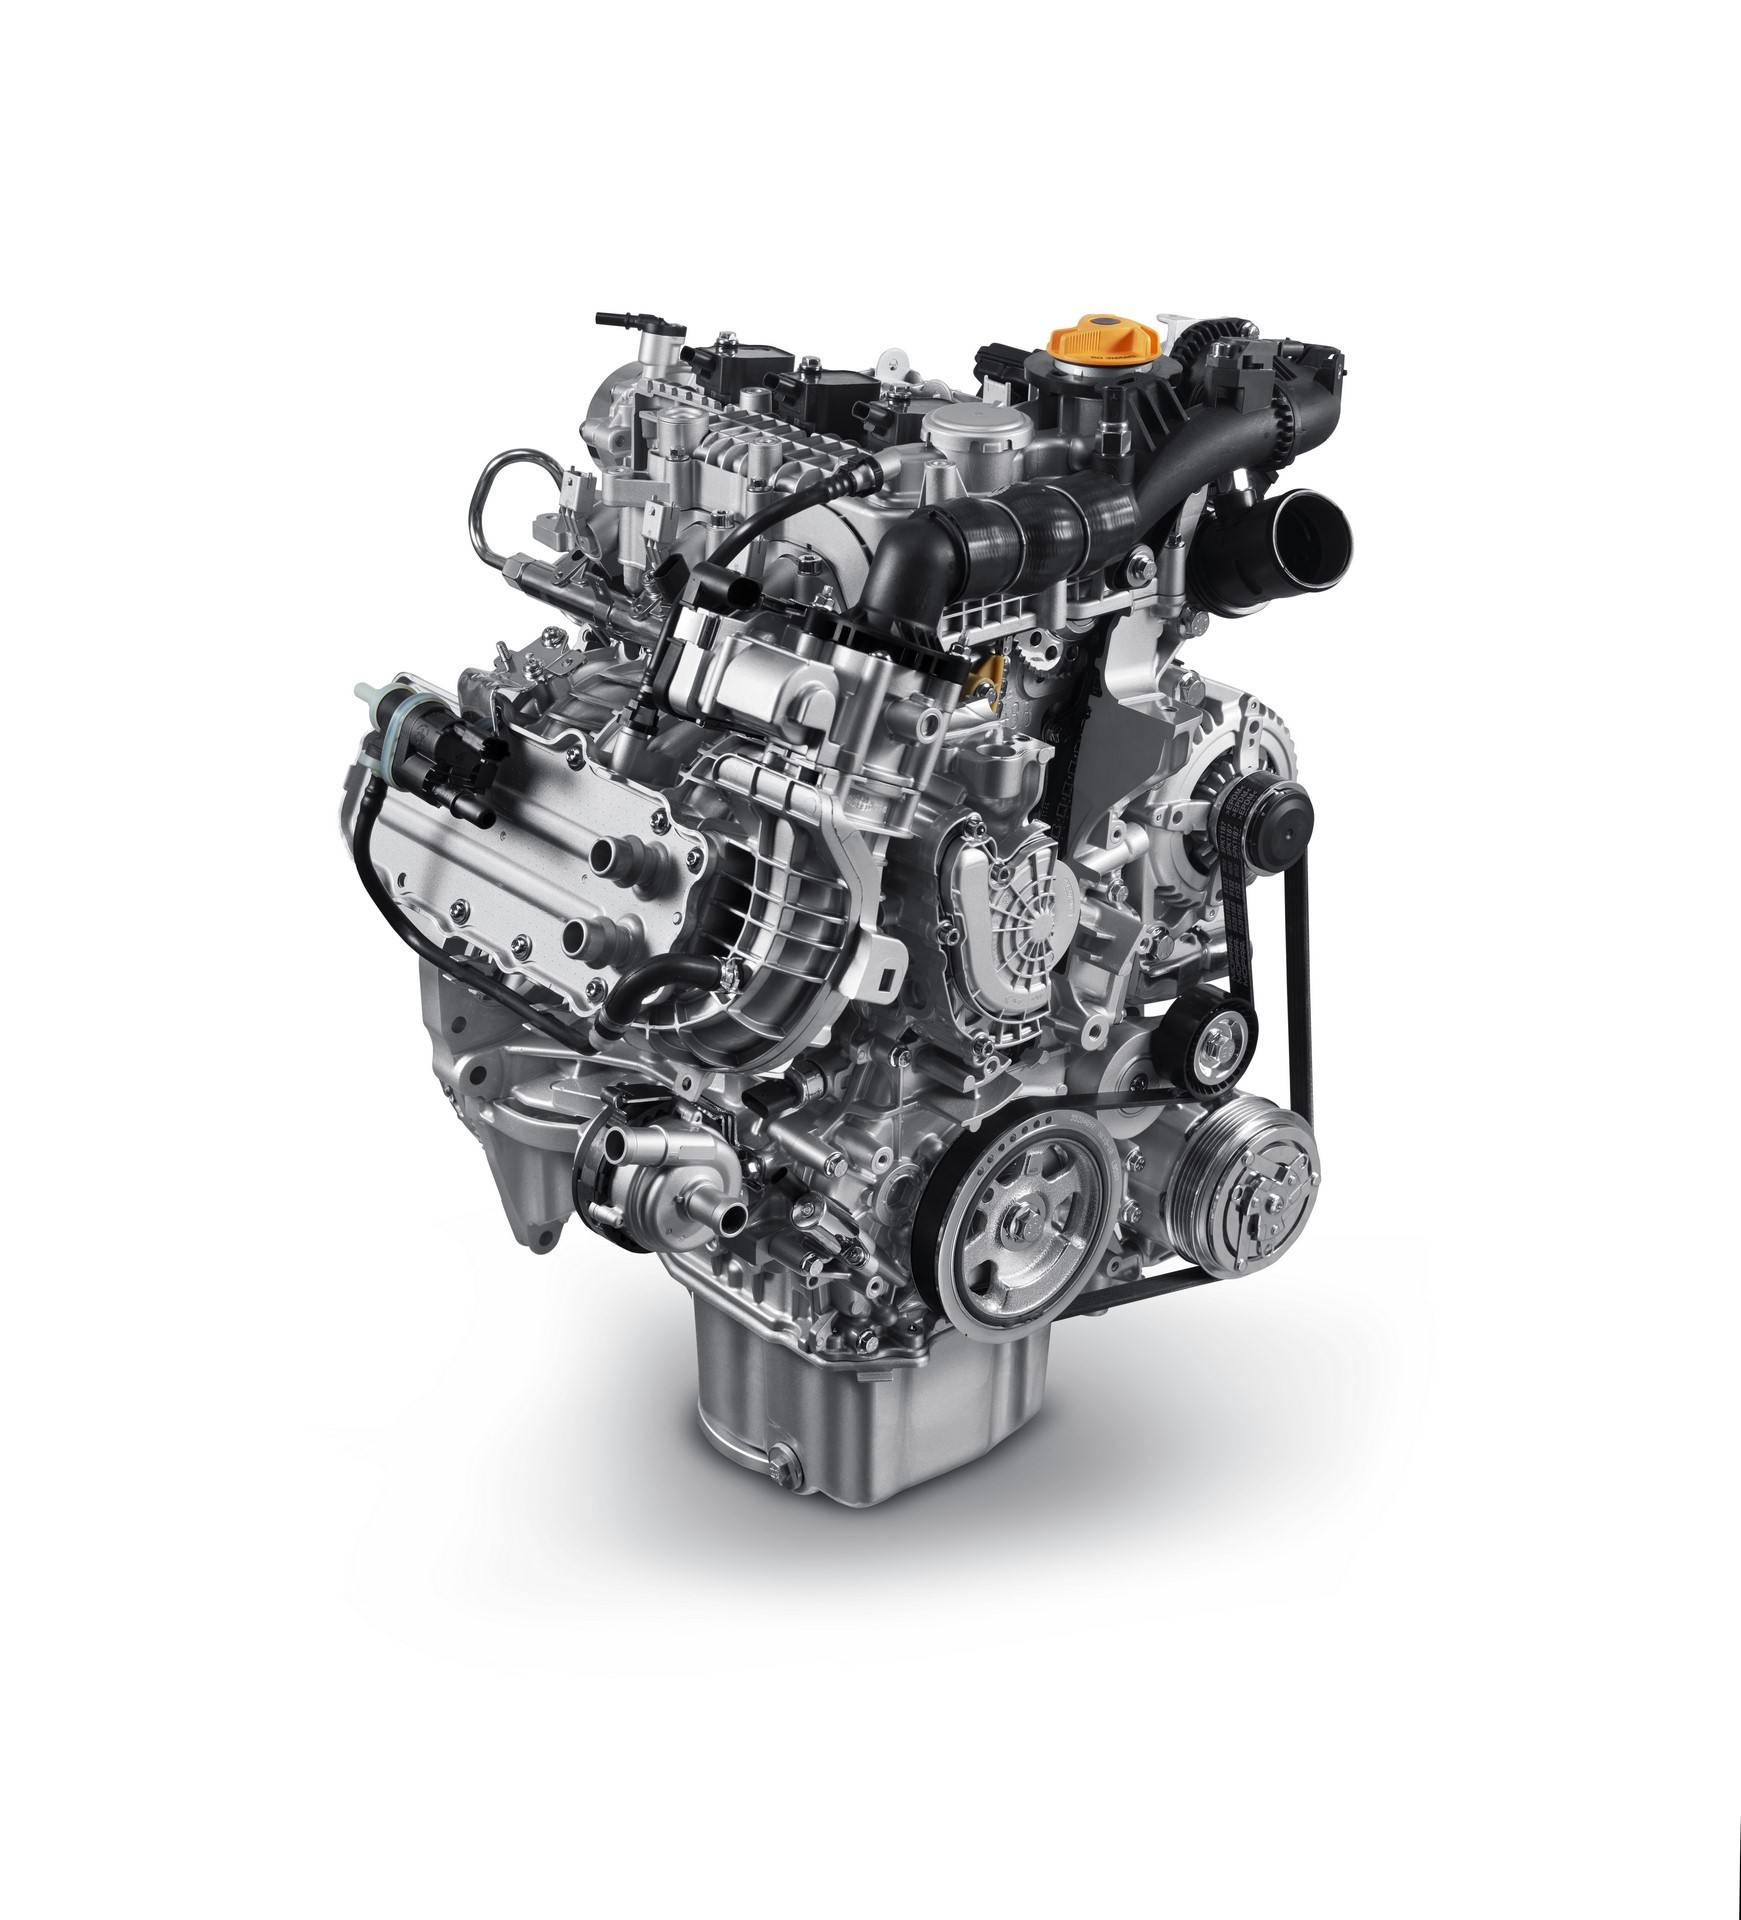 180828_Fiat_New-10L-Turbo-3-cylinder-120HP_09